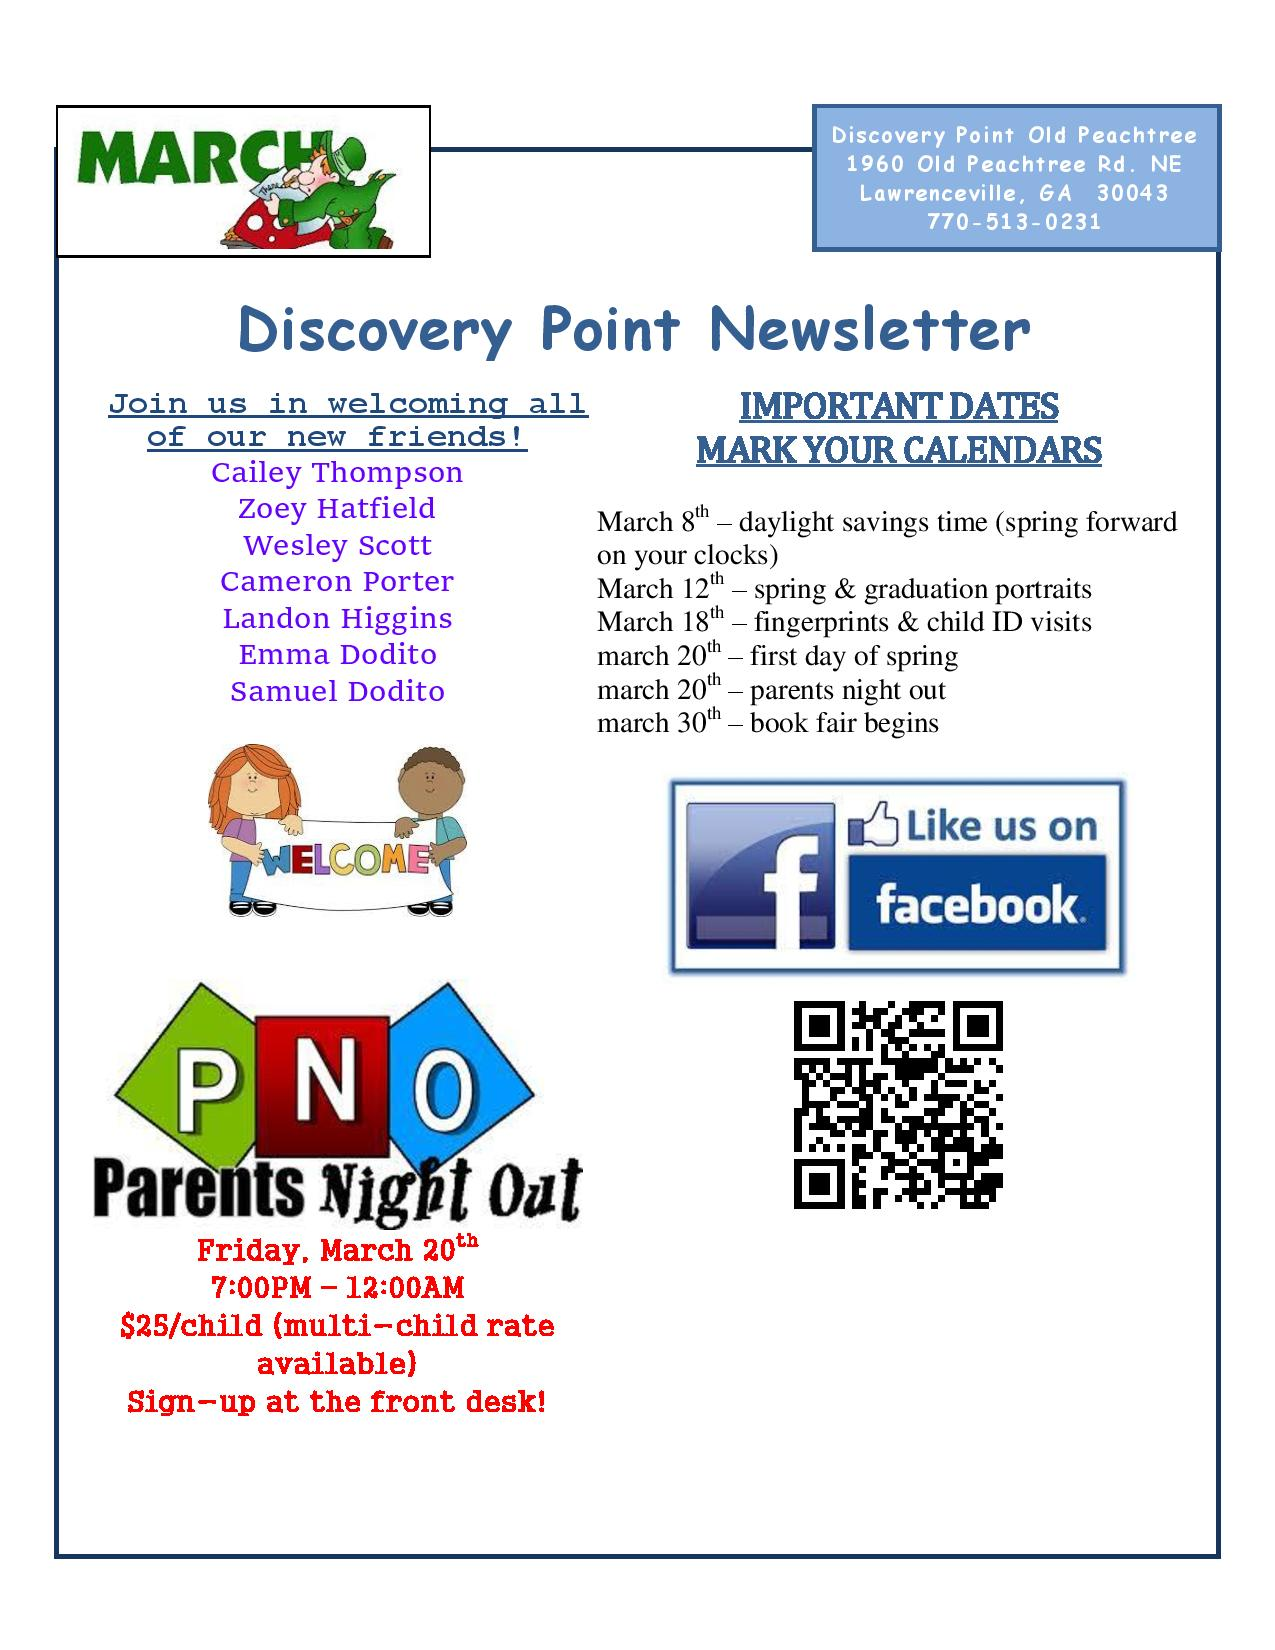 Discovery Point Old Peachtree March 2015 Newsletter Page 1